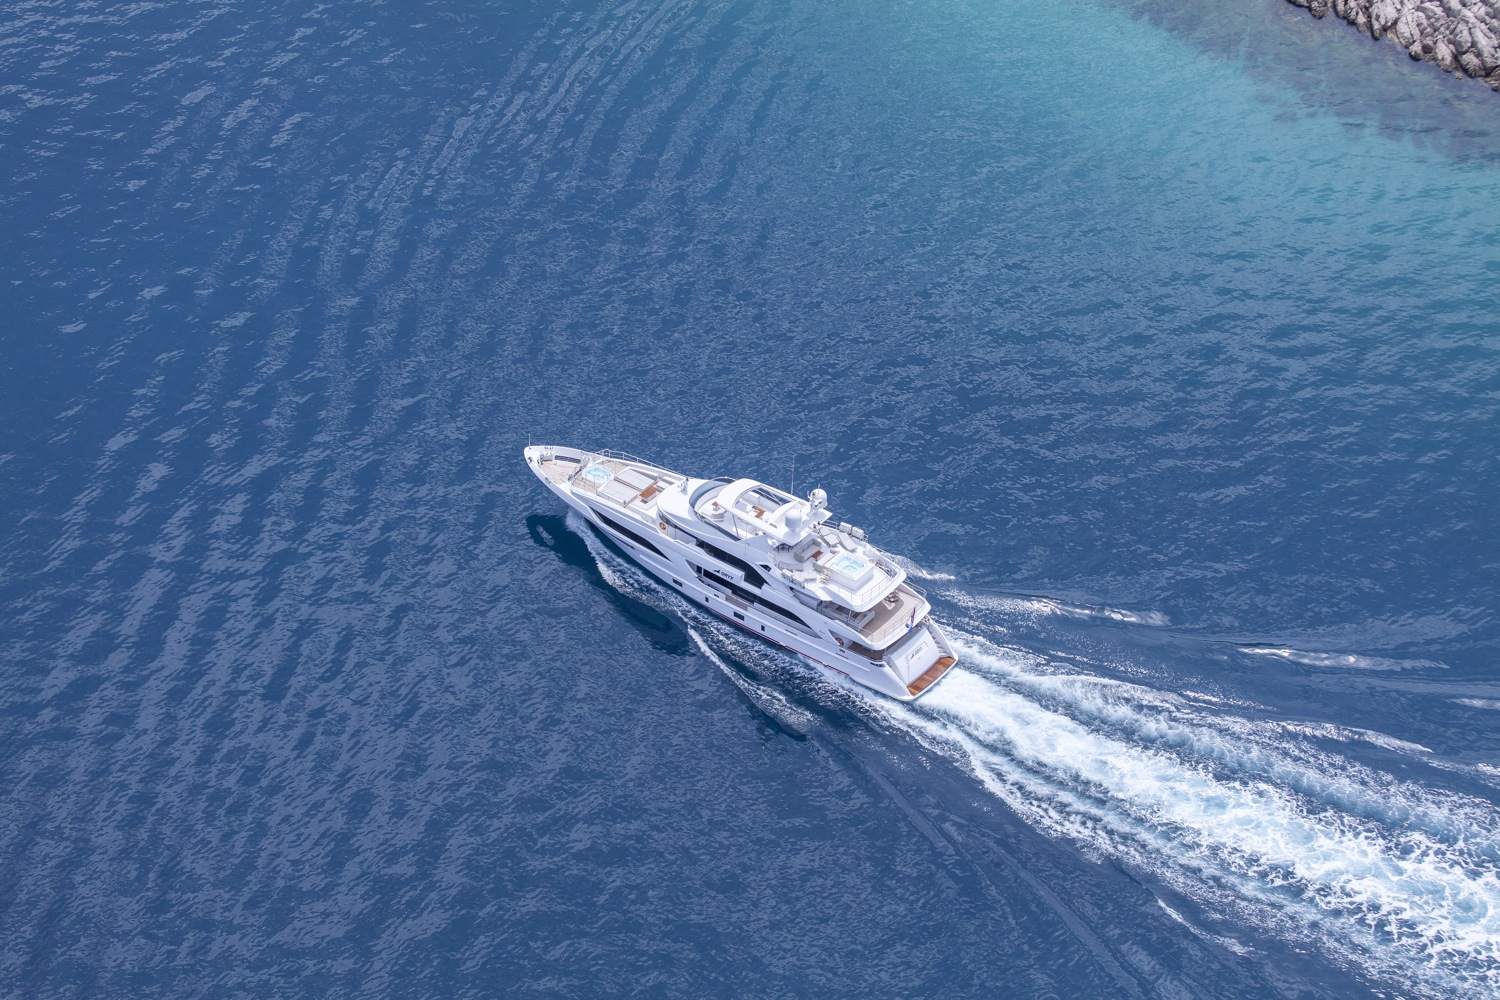 Aerial View Of The Yacht Running